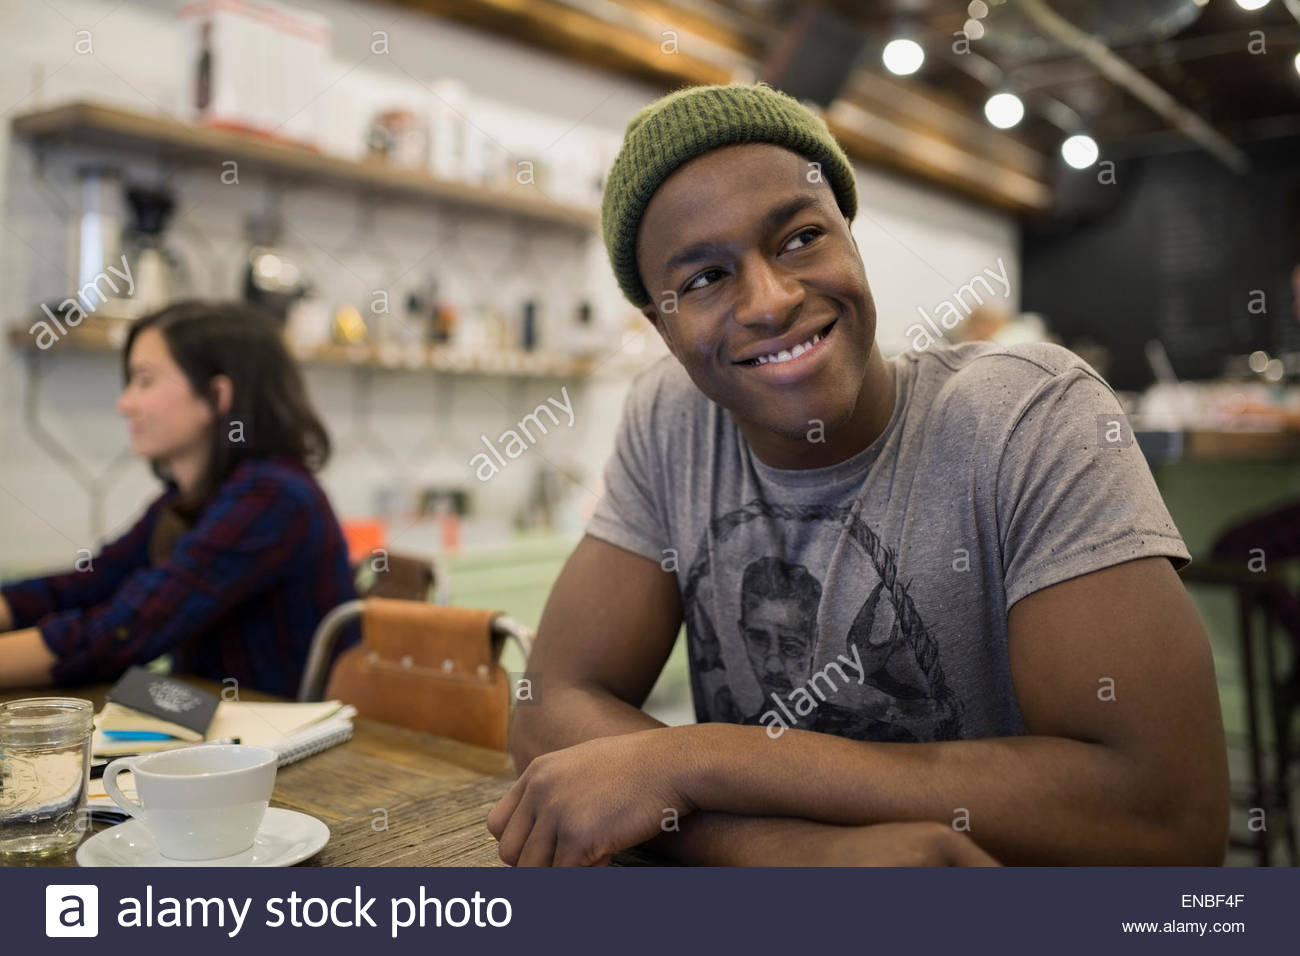 Smiling man in cafe Photo Stock